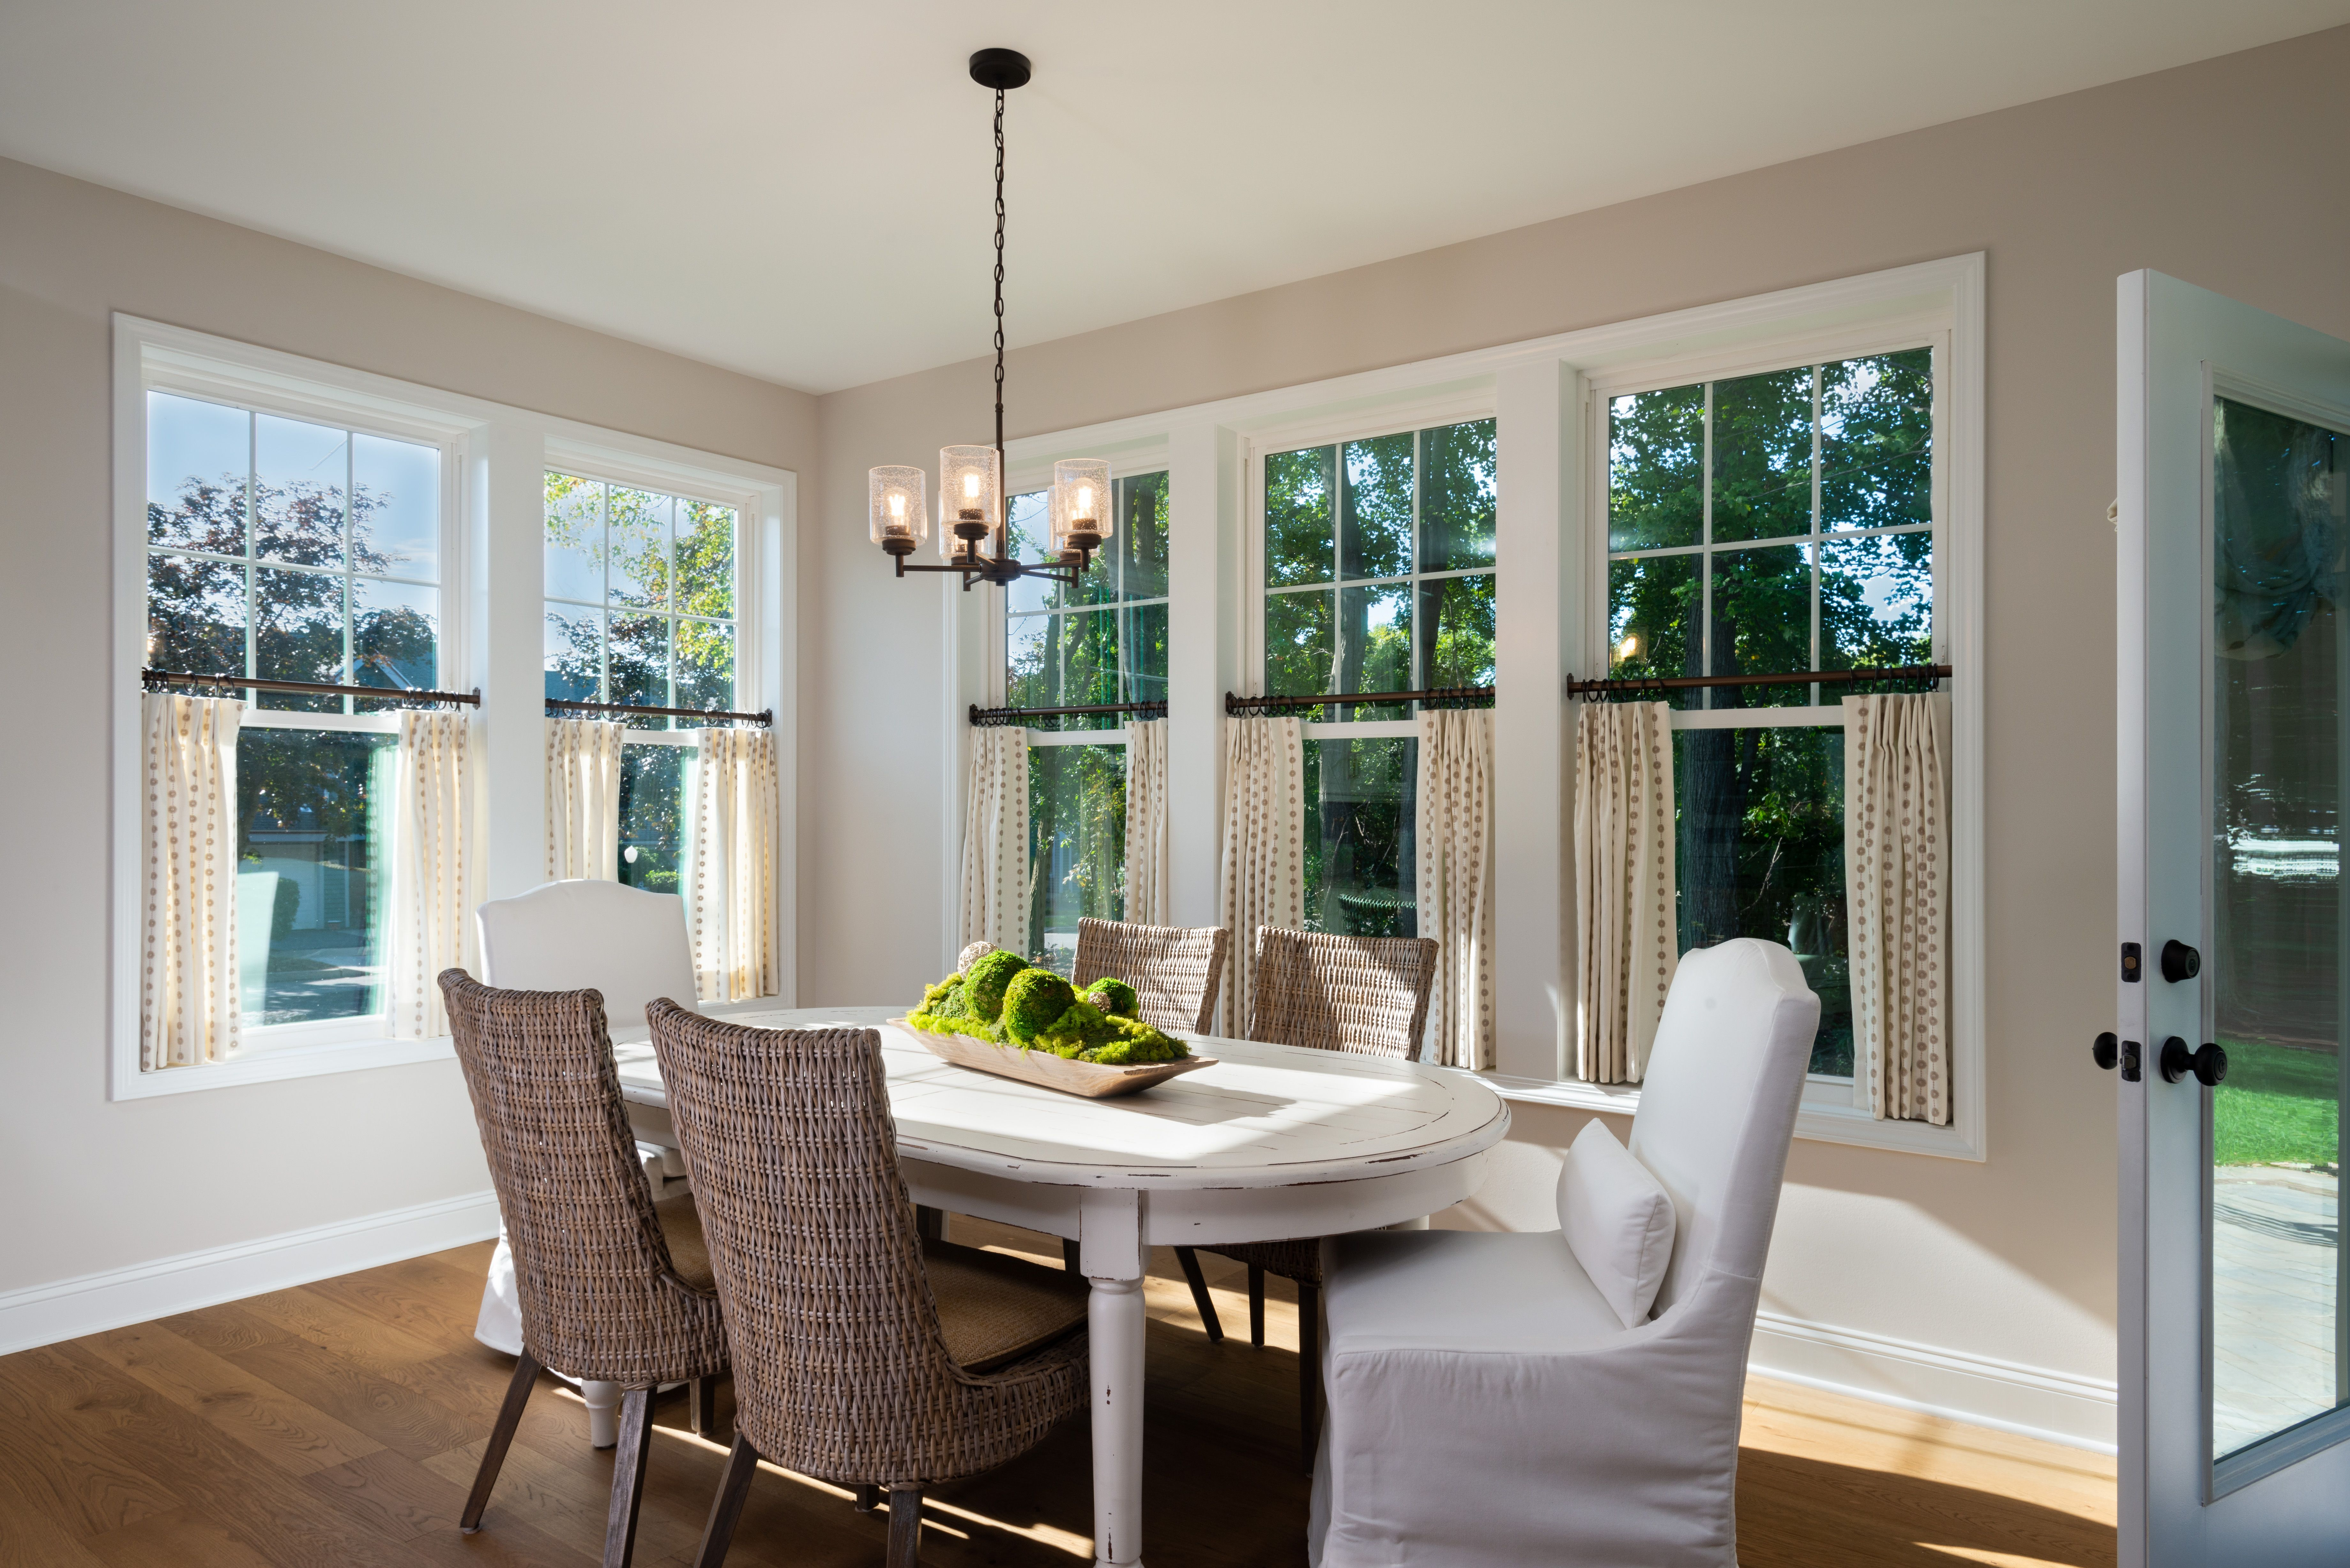 Living Area featured in the Weston II By Belmonte Builders in Albany-Saratoga, NY